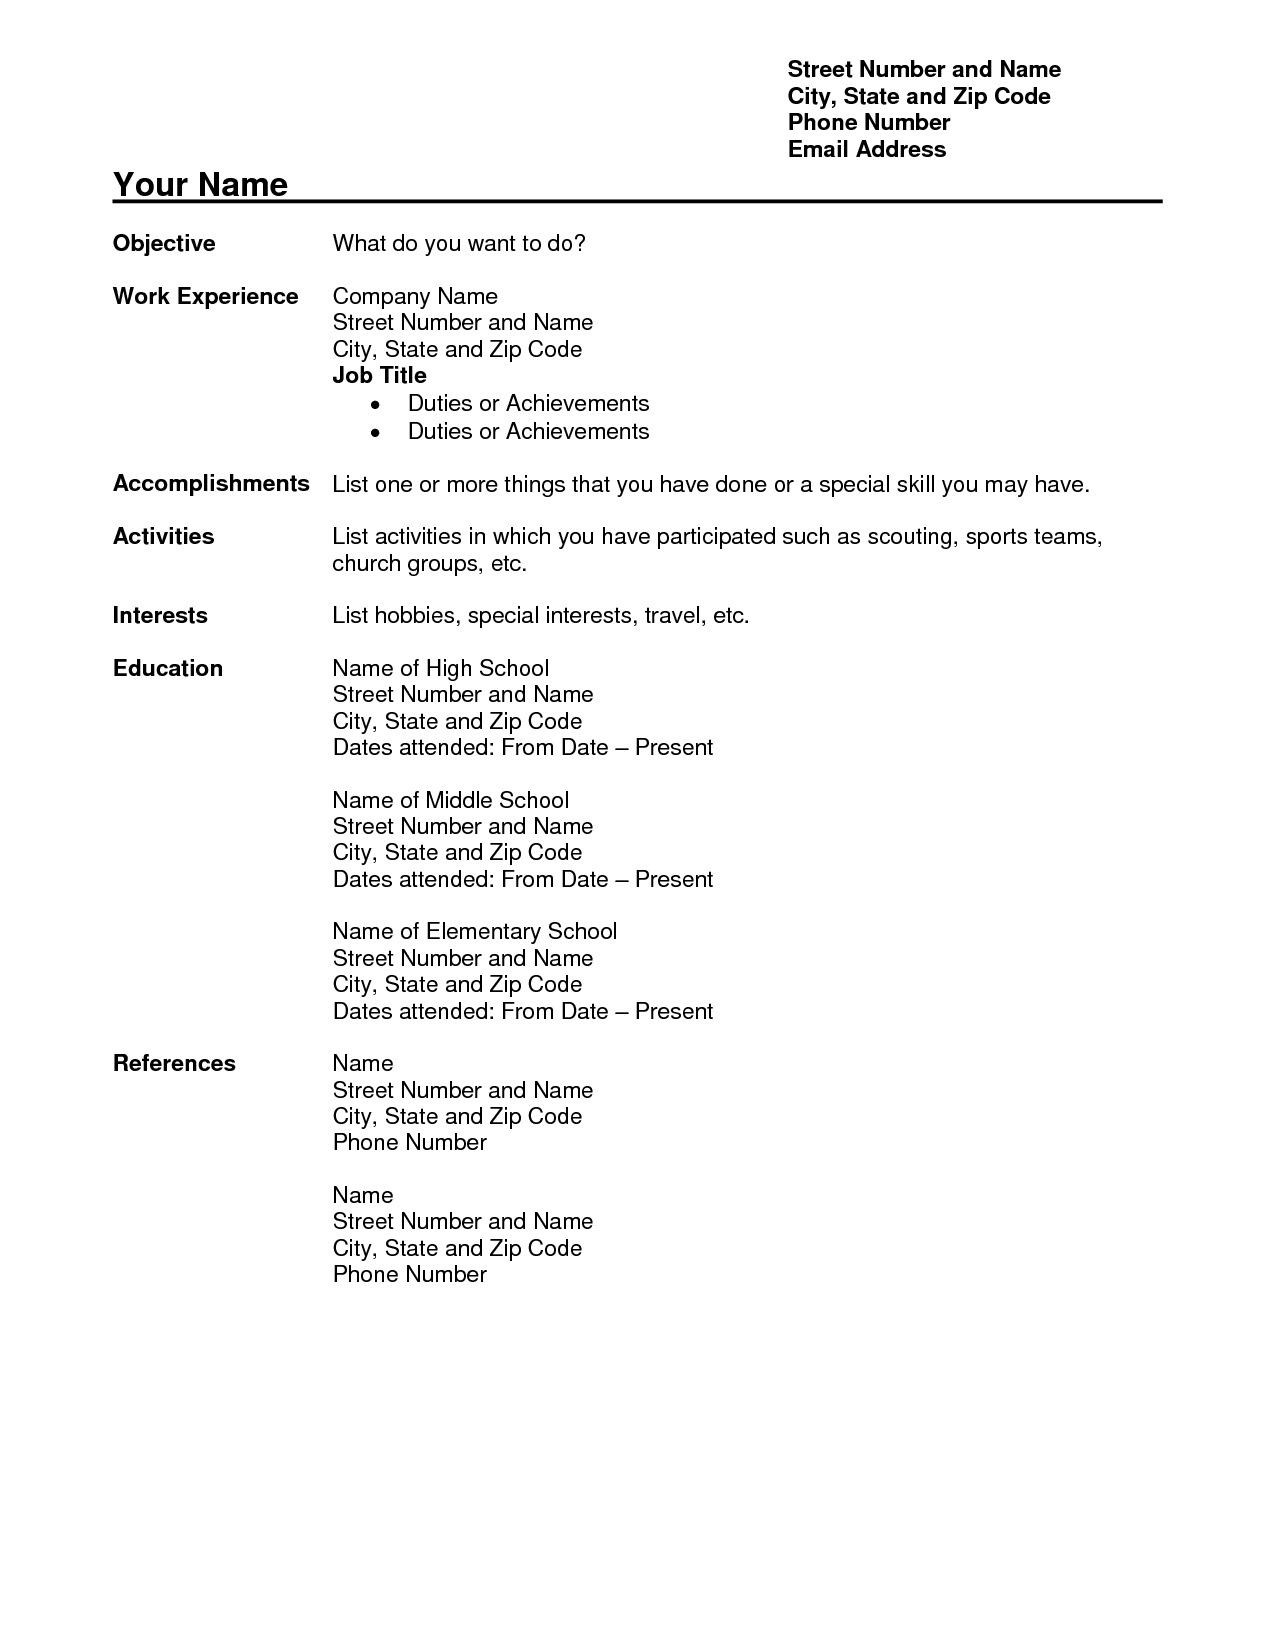 Free Teacher Resume Templates Download Free Teacher Resume Templates  Download, Free Teacher Resume Templates Microsoft  Resume Template Download Free Microsoft Word